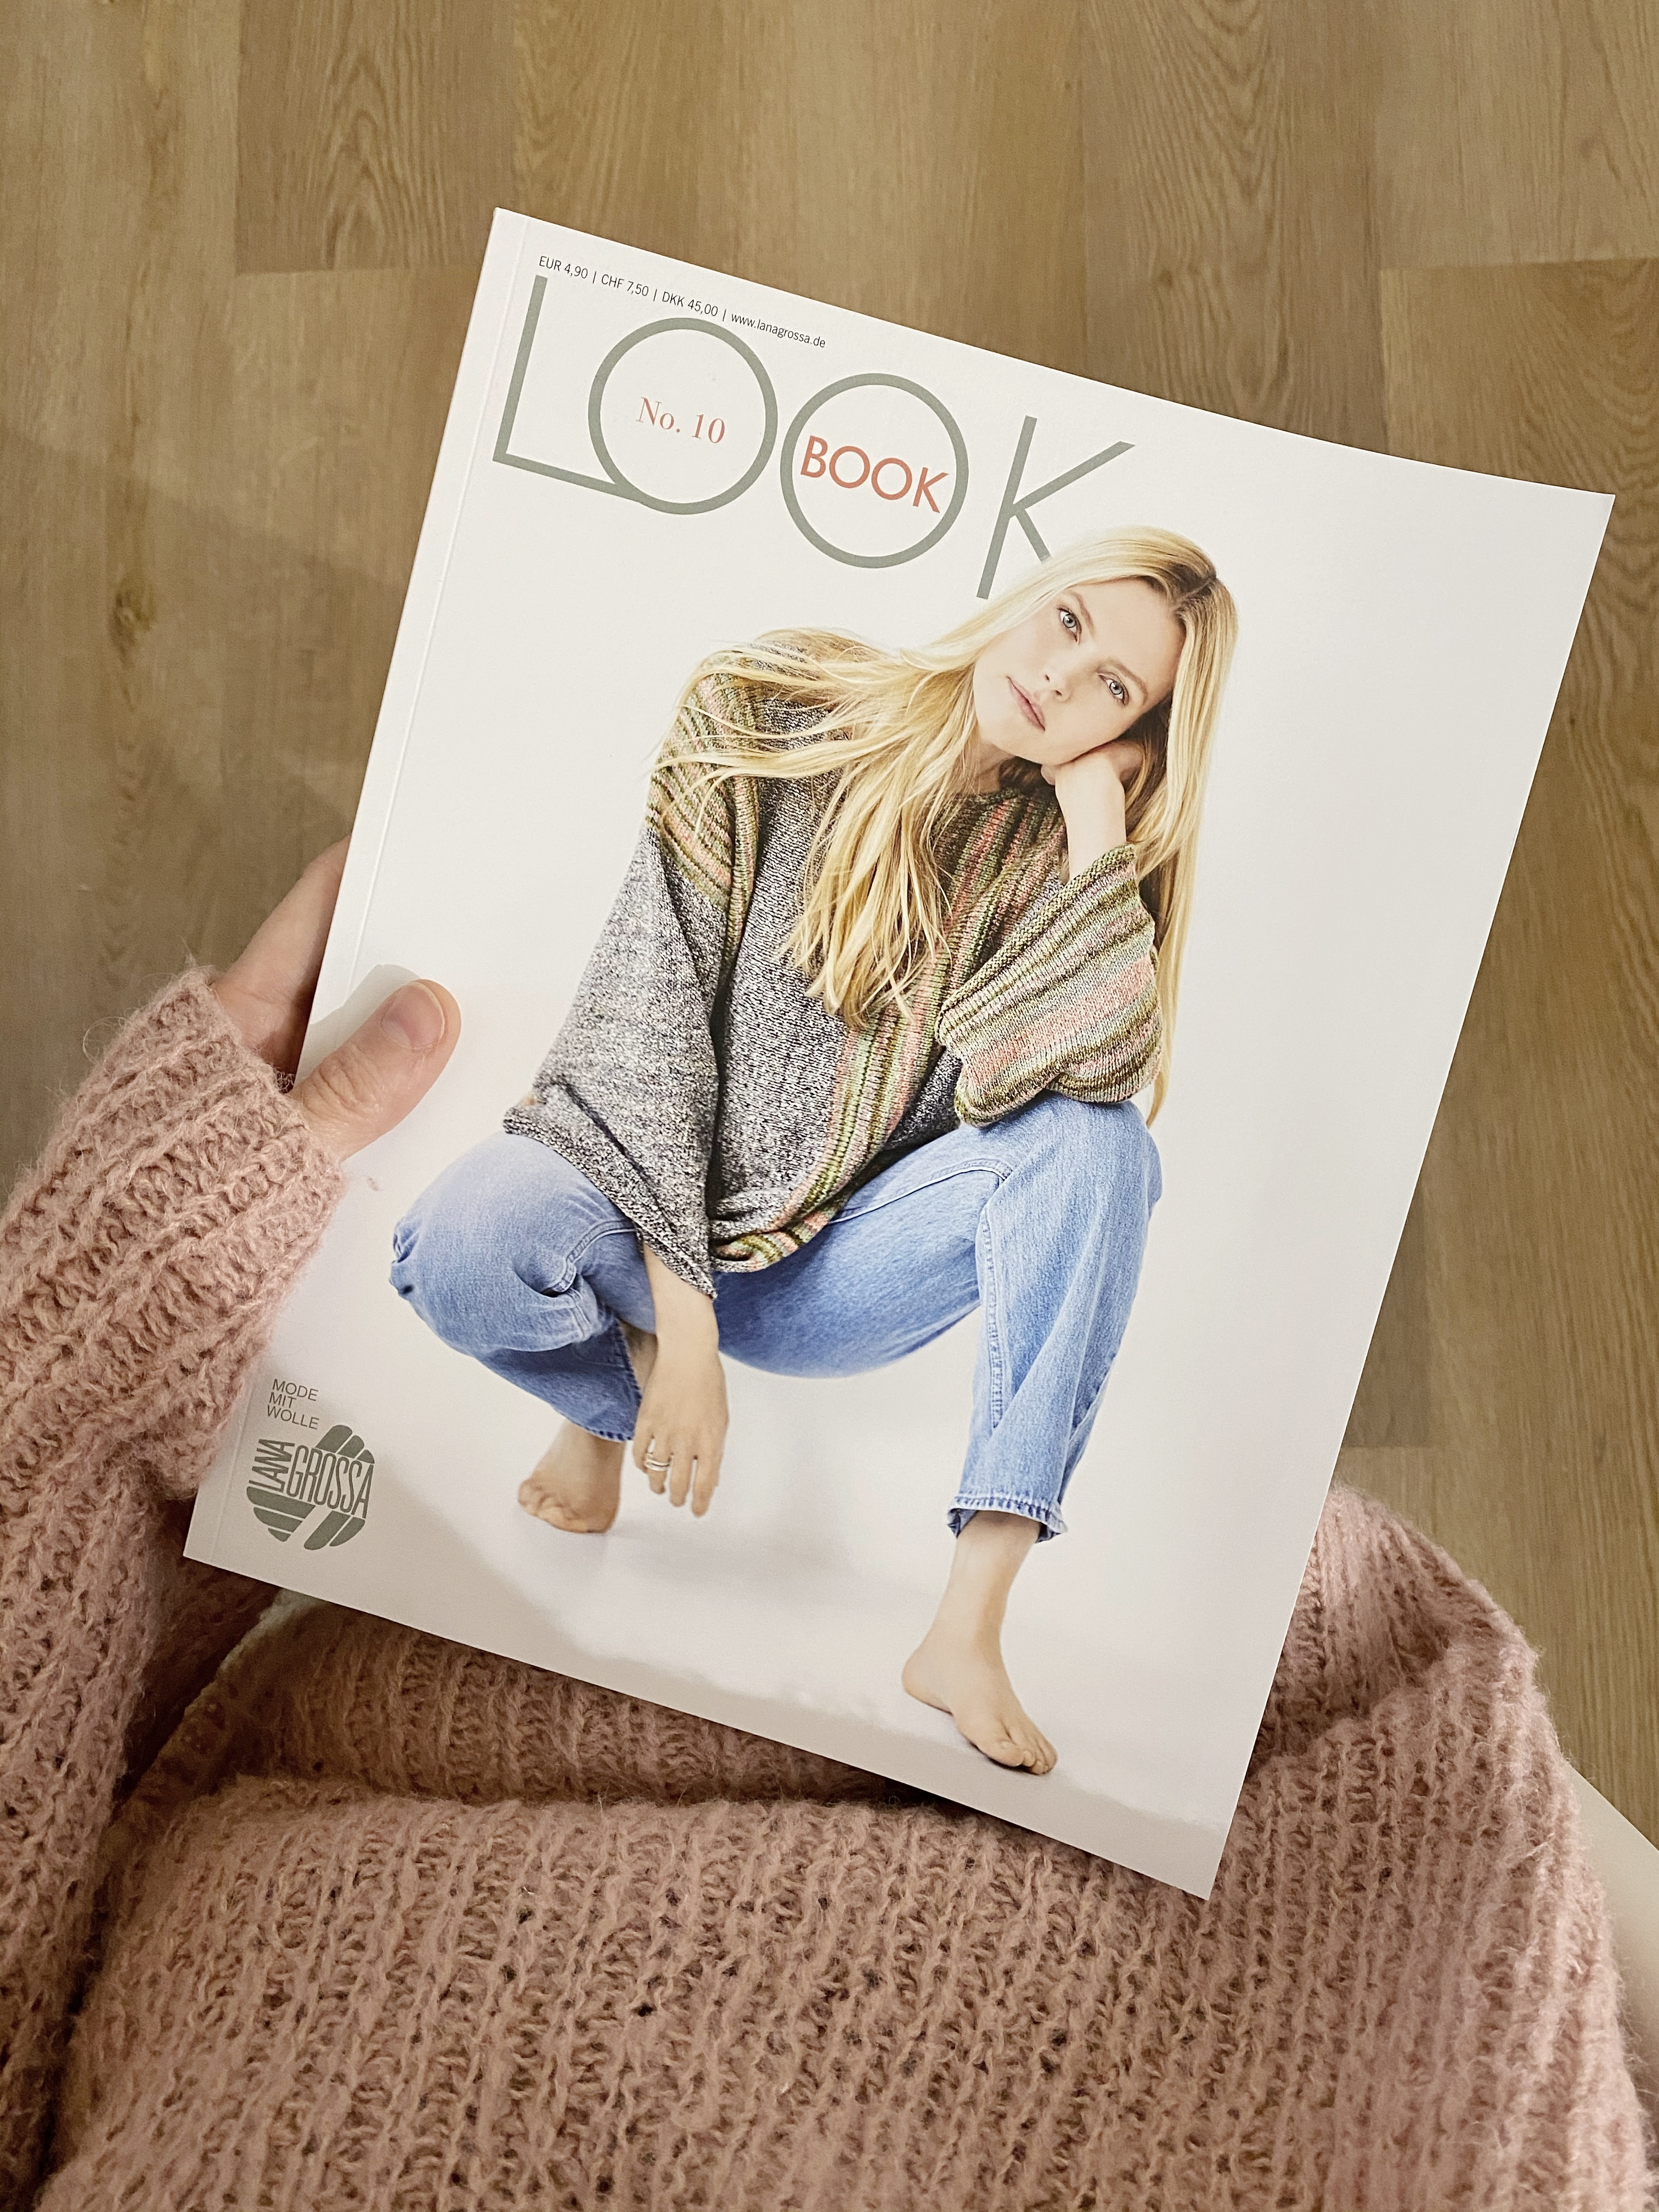 Look Book No. 10